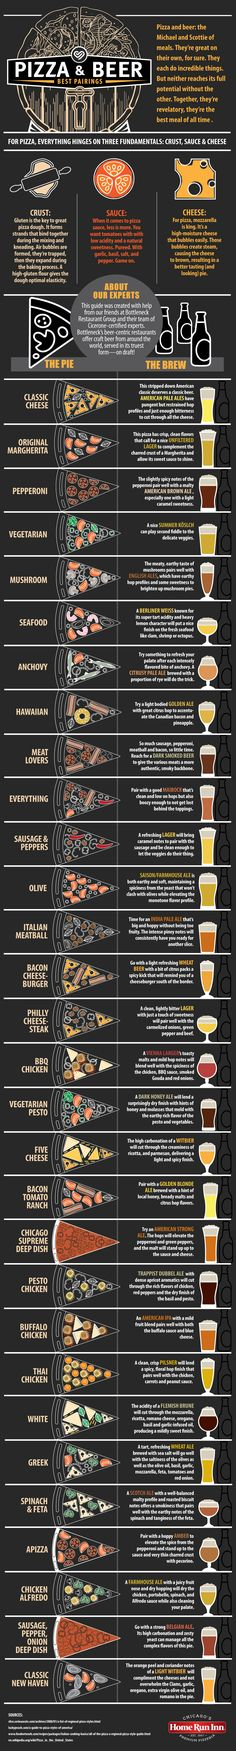 Beer + Pizza Pairings Guide [Infographic]